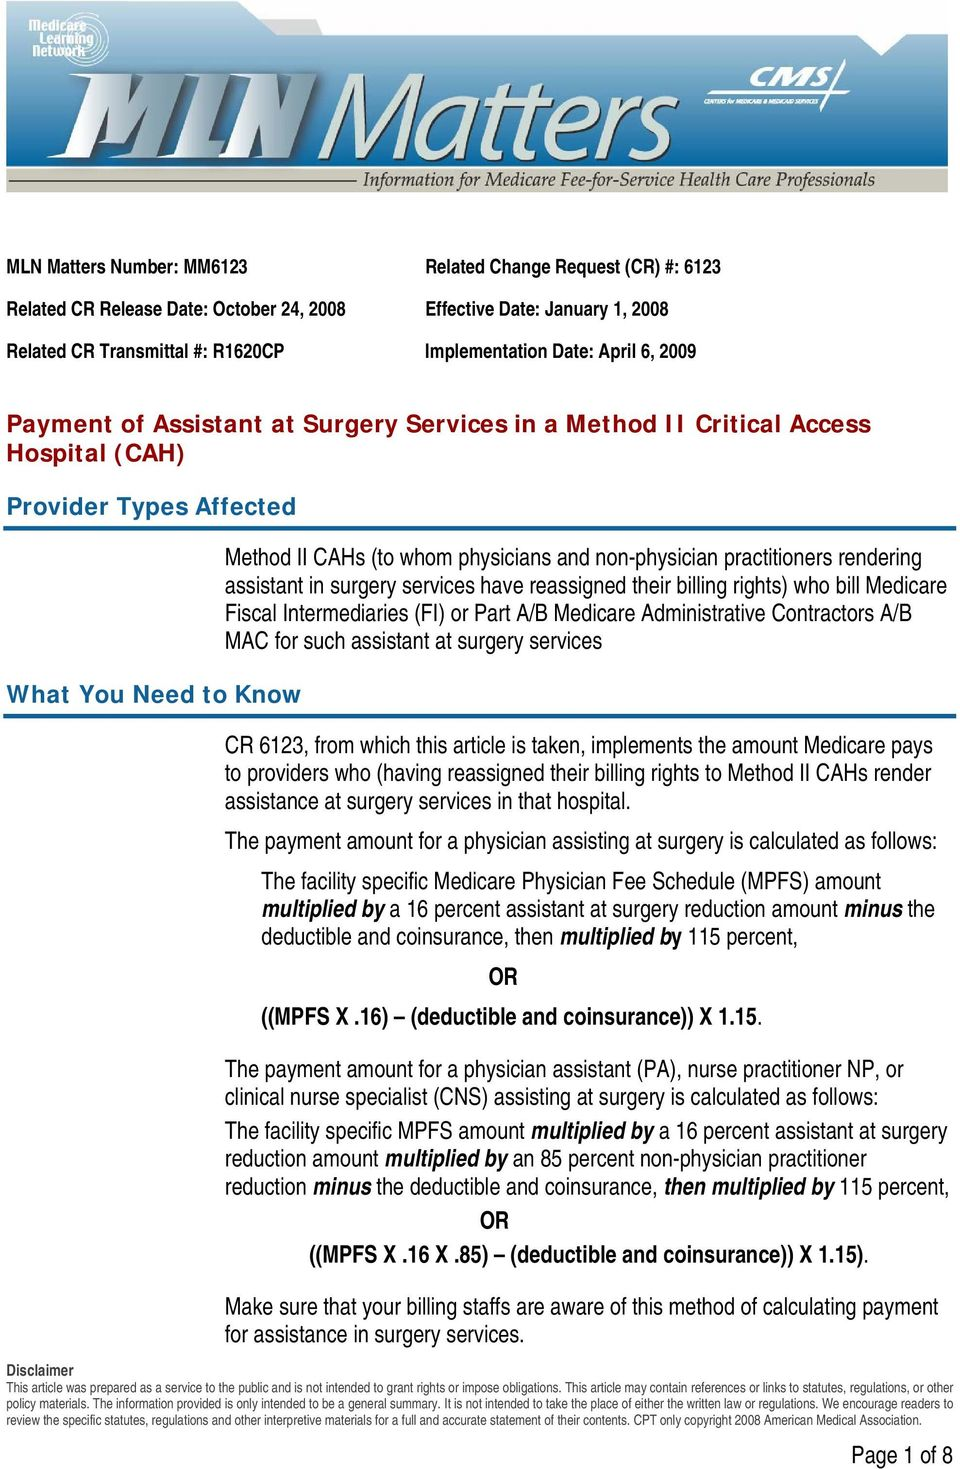 practitioners rendering assistant in surgery services have reassigned their billing rights) who bill Medicare Fiscal Intermediaries (FI) or Part A/B Medicare Administrative Contractors A/B MAC for